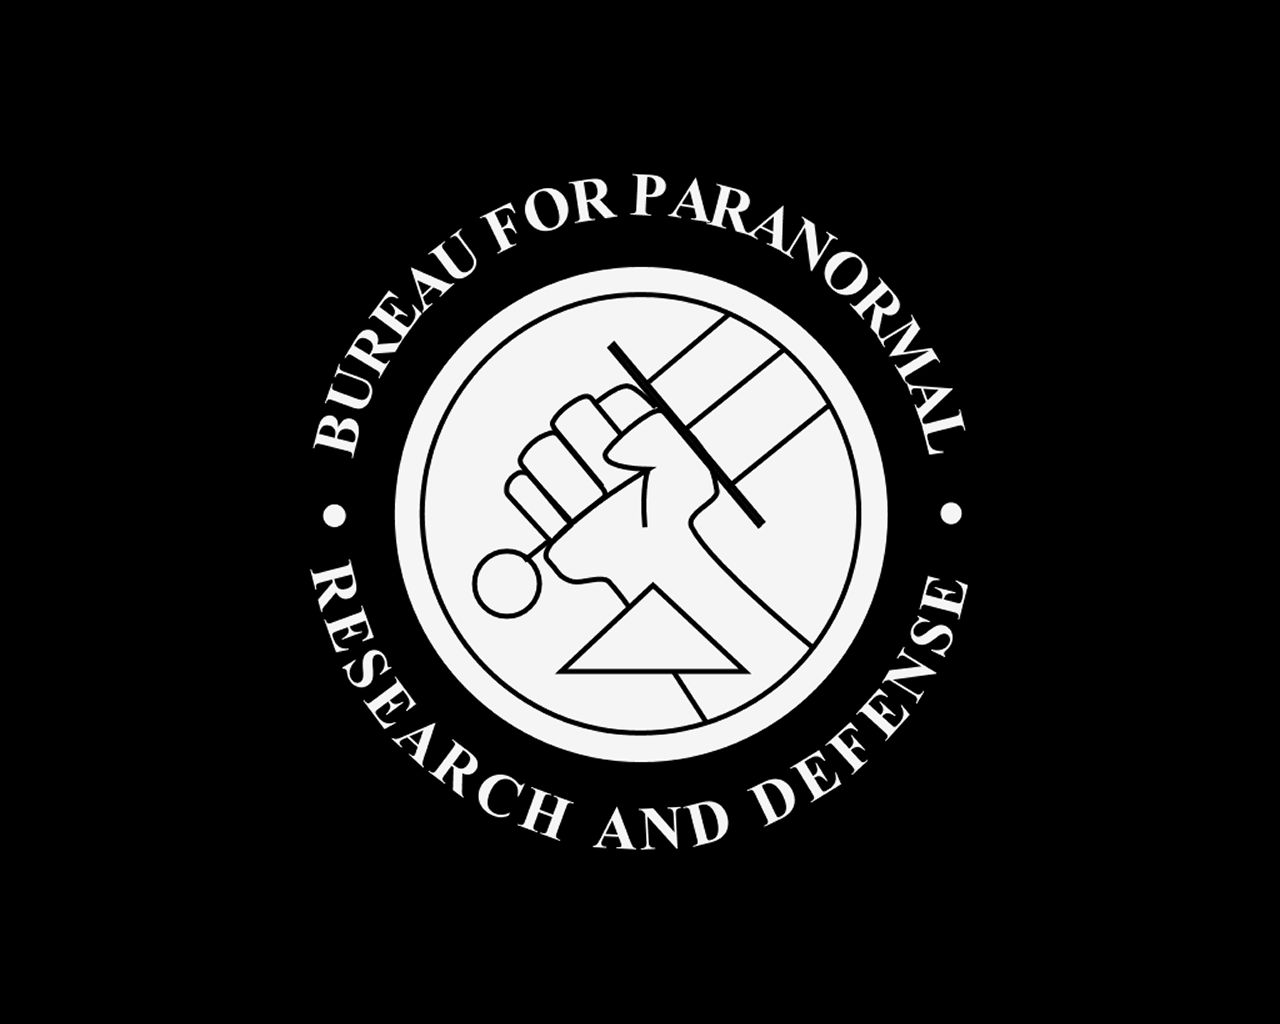 bureau for paranormal research and defense logo